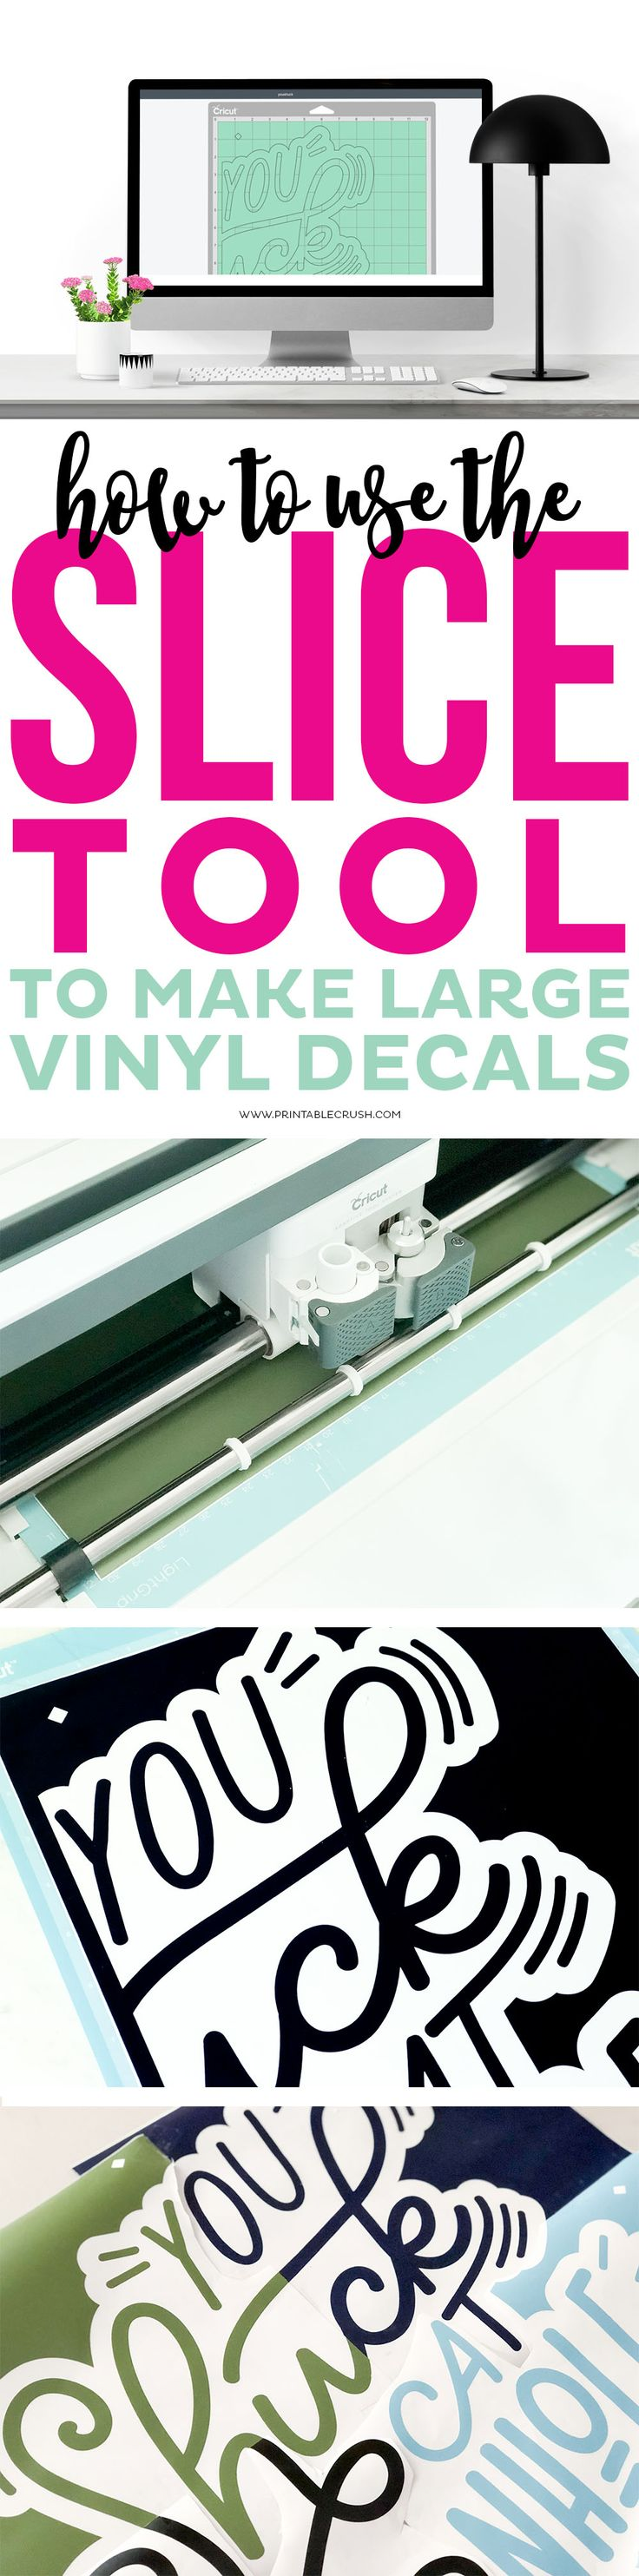 Vinyl Decals Create Large Decals In Cricut Design Space